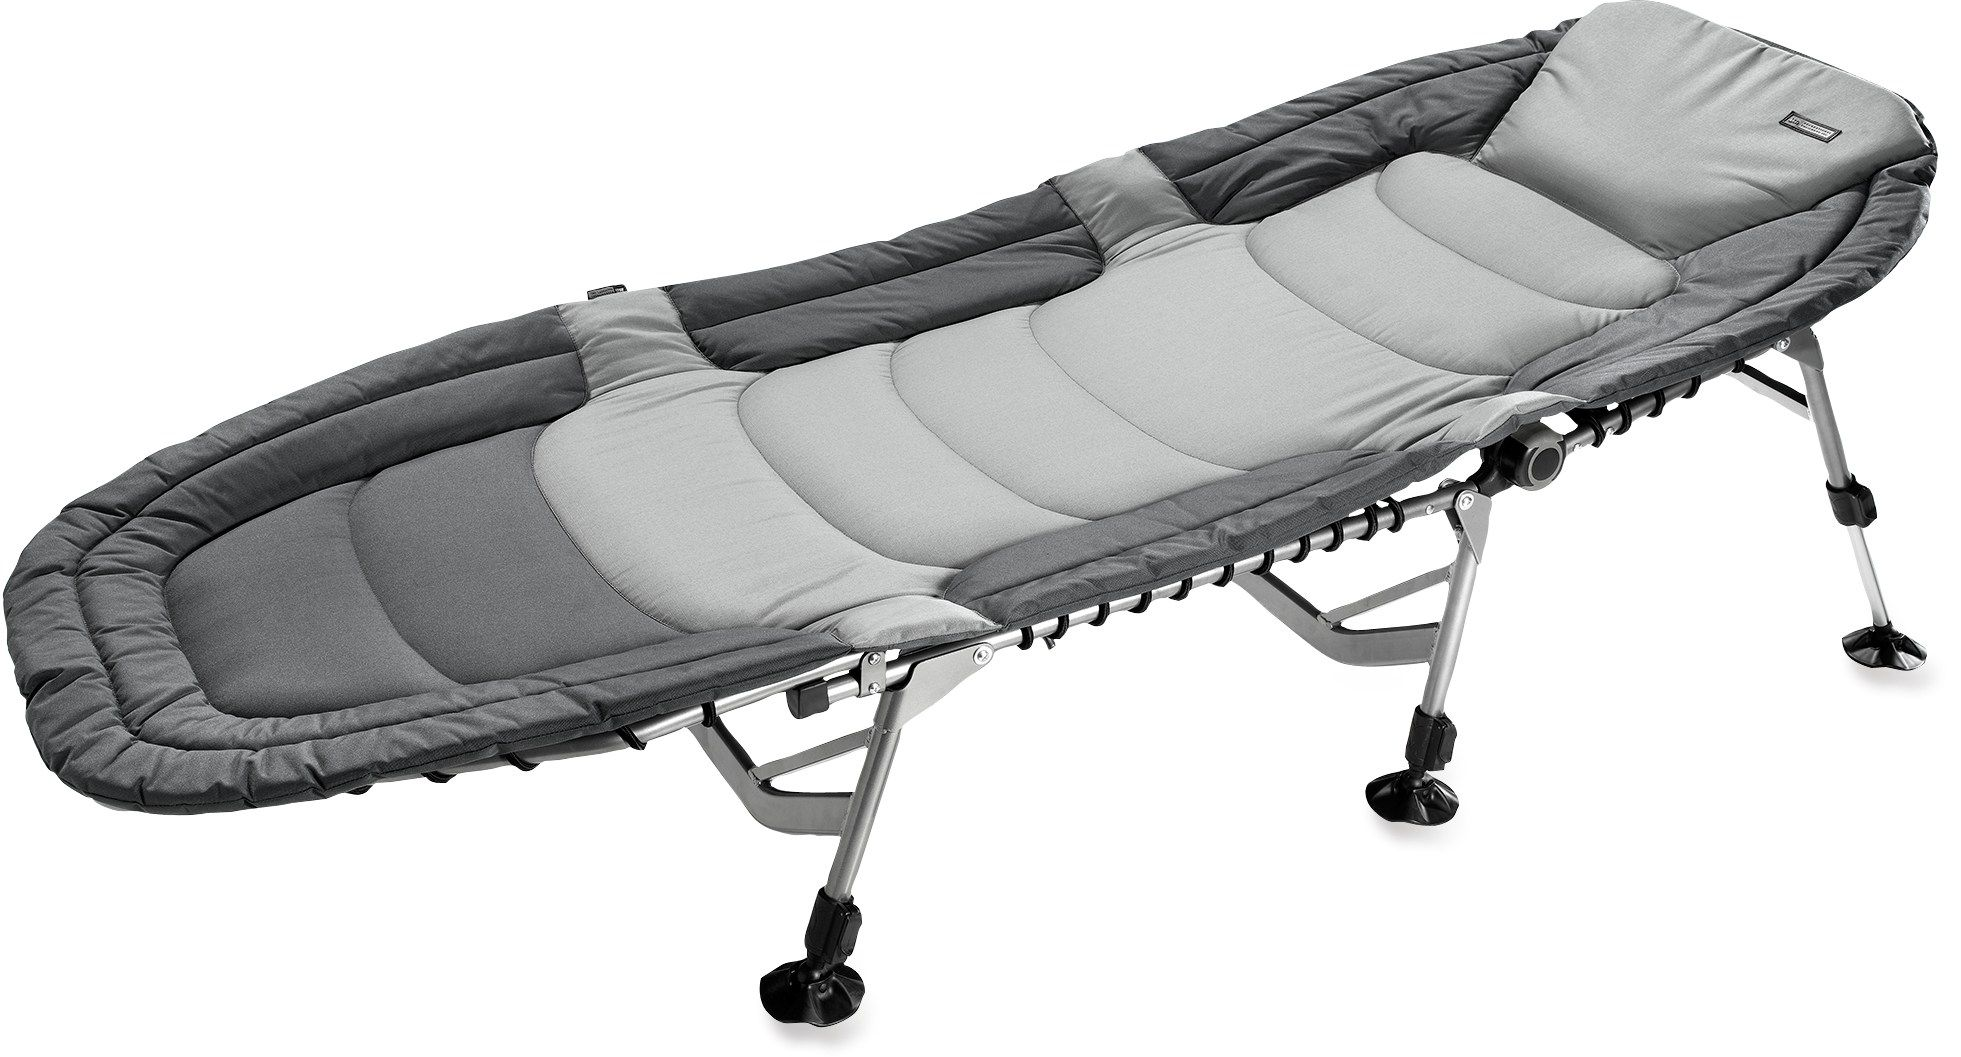 We love the Comfort Cot! Campsite lounging, check! Good nights sleep, check!